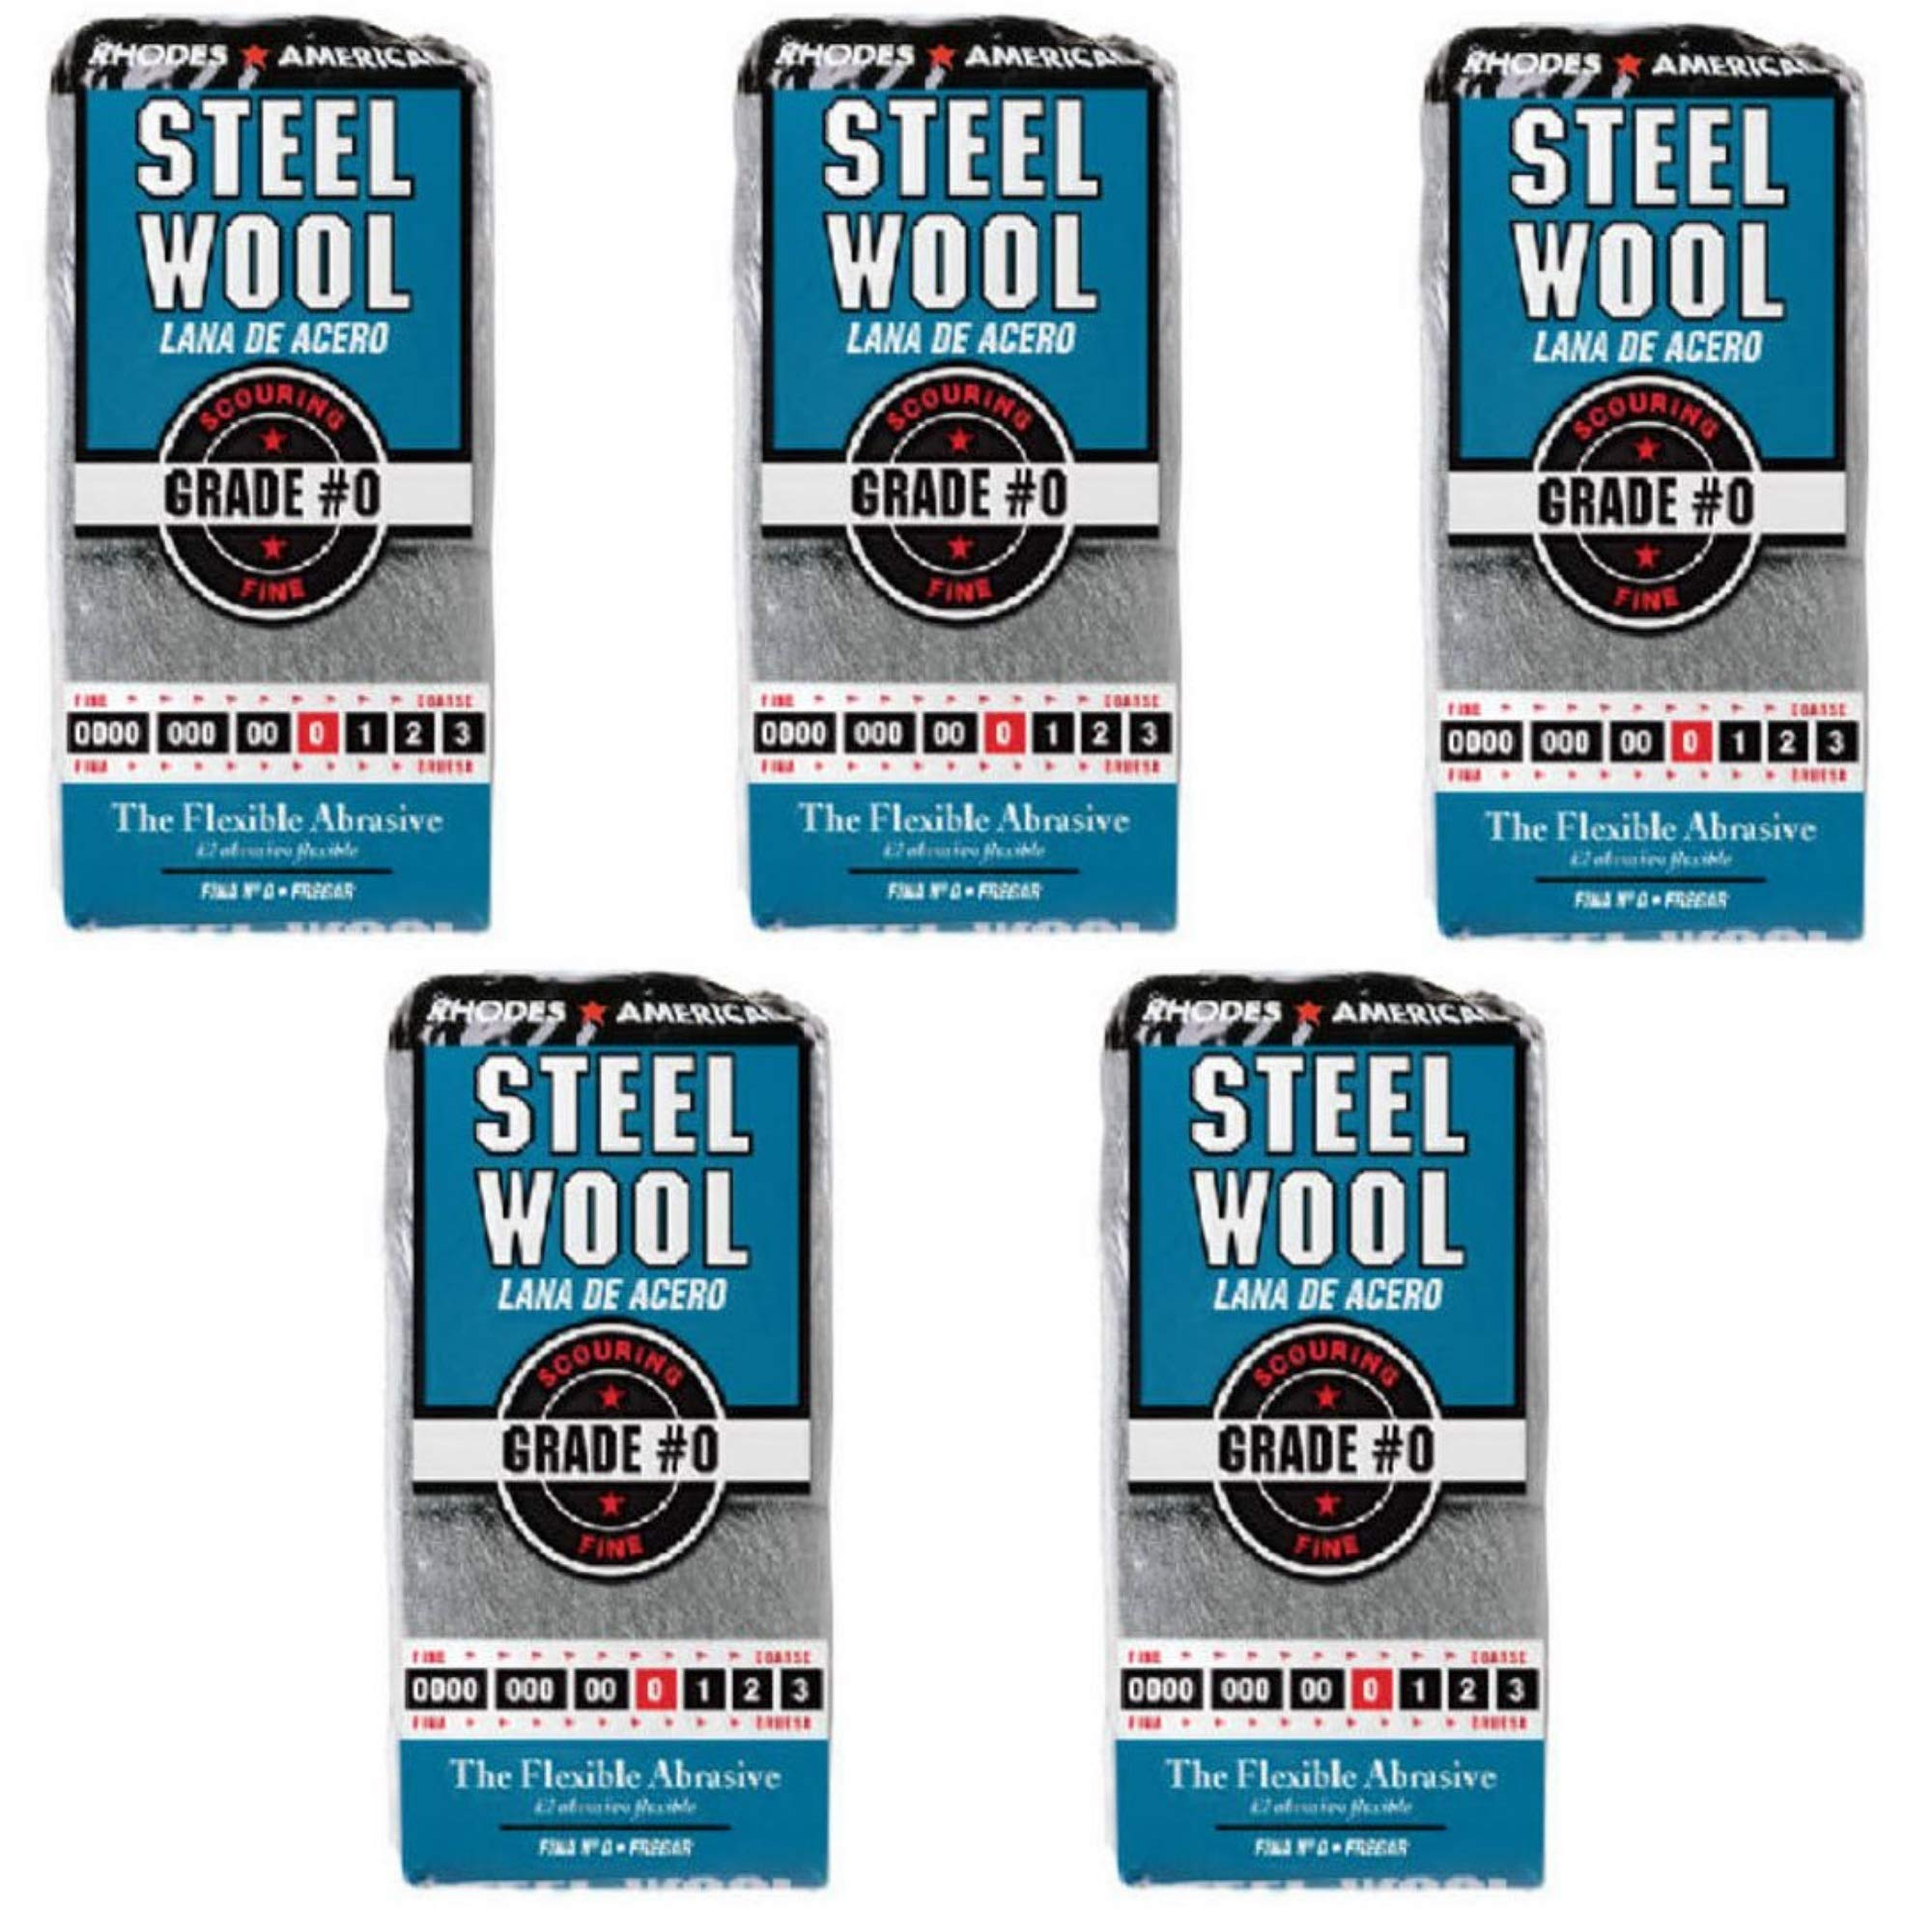 HOMAX Corporation 10121110 Steel Wool No. 0 PK/12, 5 Pack by Homax Products